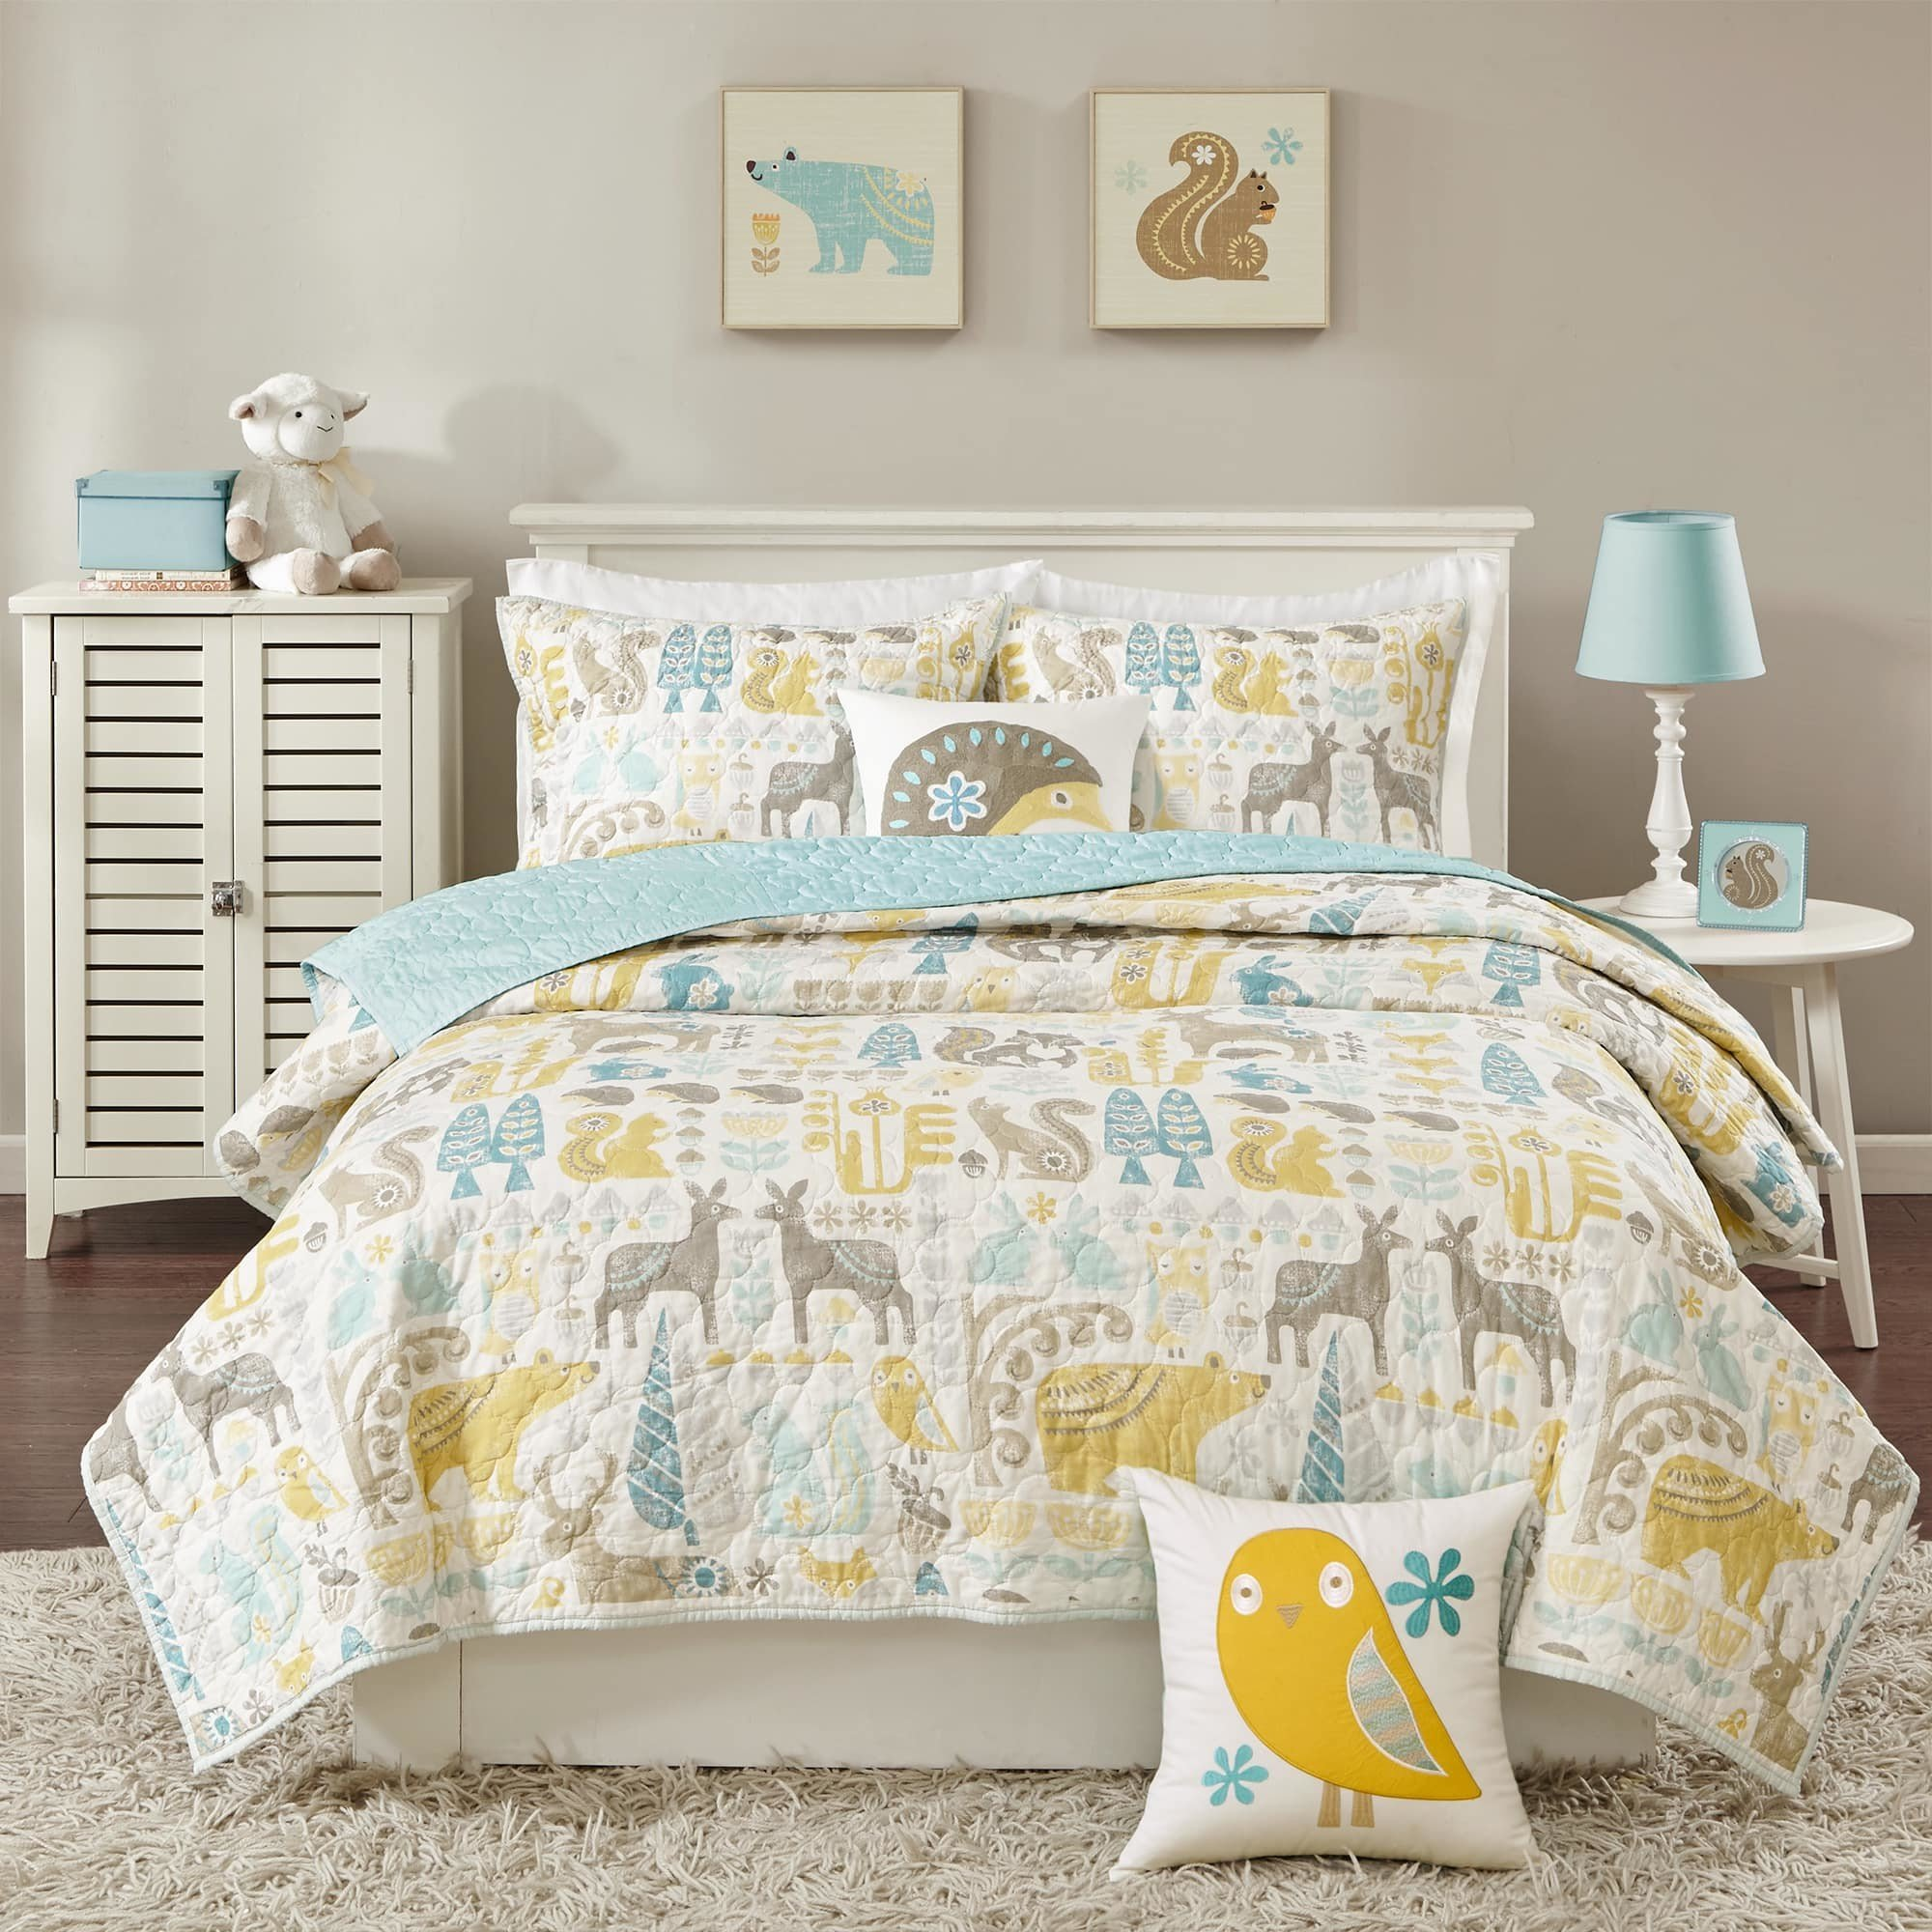 4 Piece Kids Blue Animal Print Theme Full Queen Size Coverlet Set, Brown Yellow Blue Cute Bear Owl Deer Porcupine Bedding, Floral Flowers Fox Hedgehog Patterned, Cotton